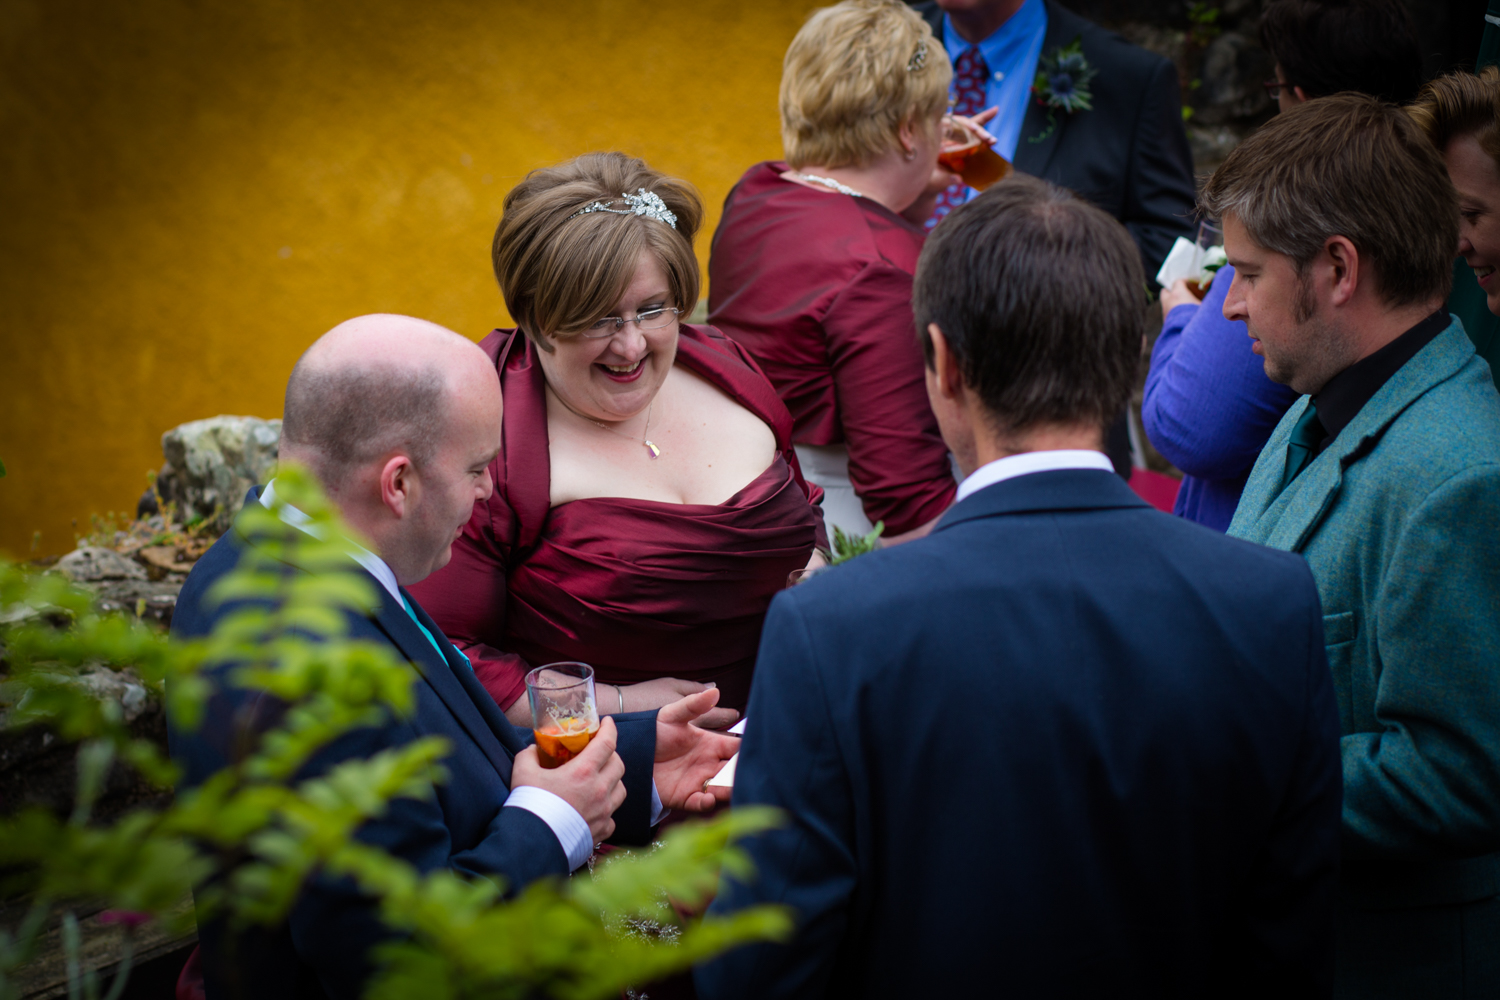 Clare and Charles wedding day blog-47.jpg